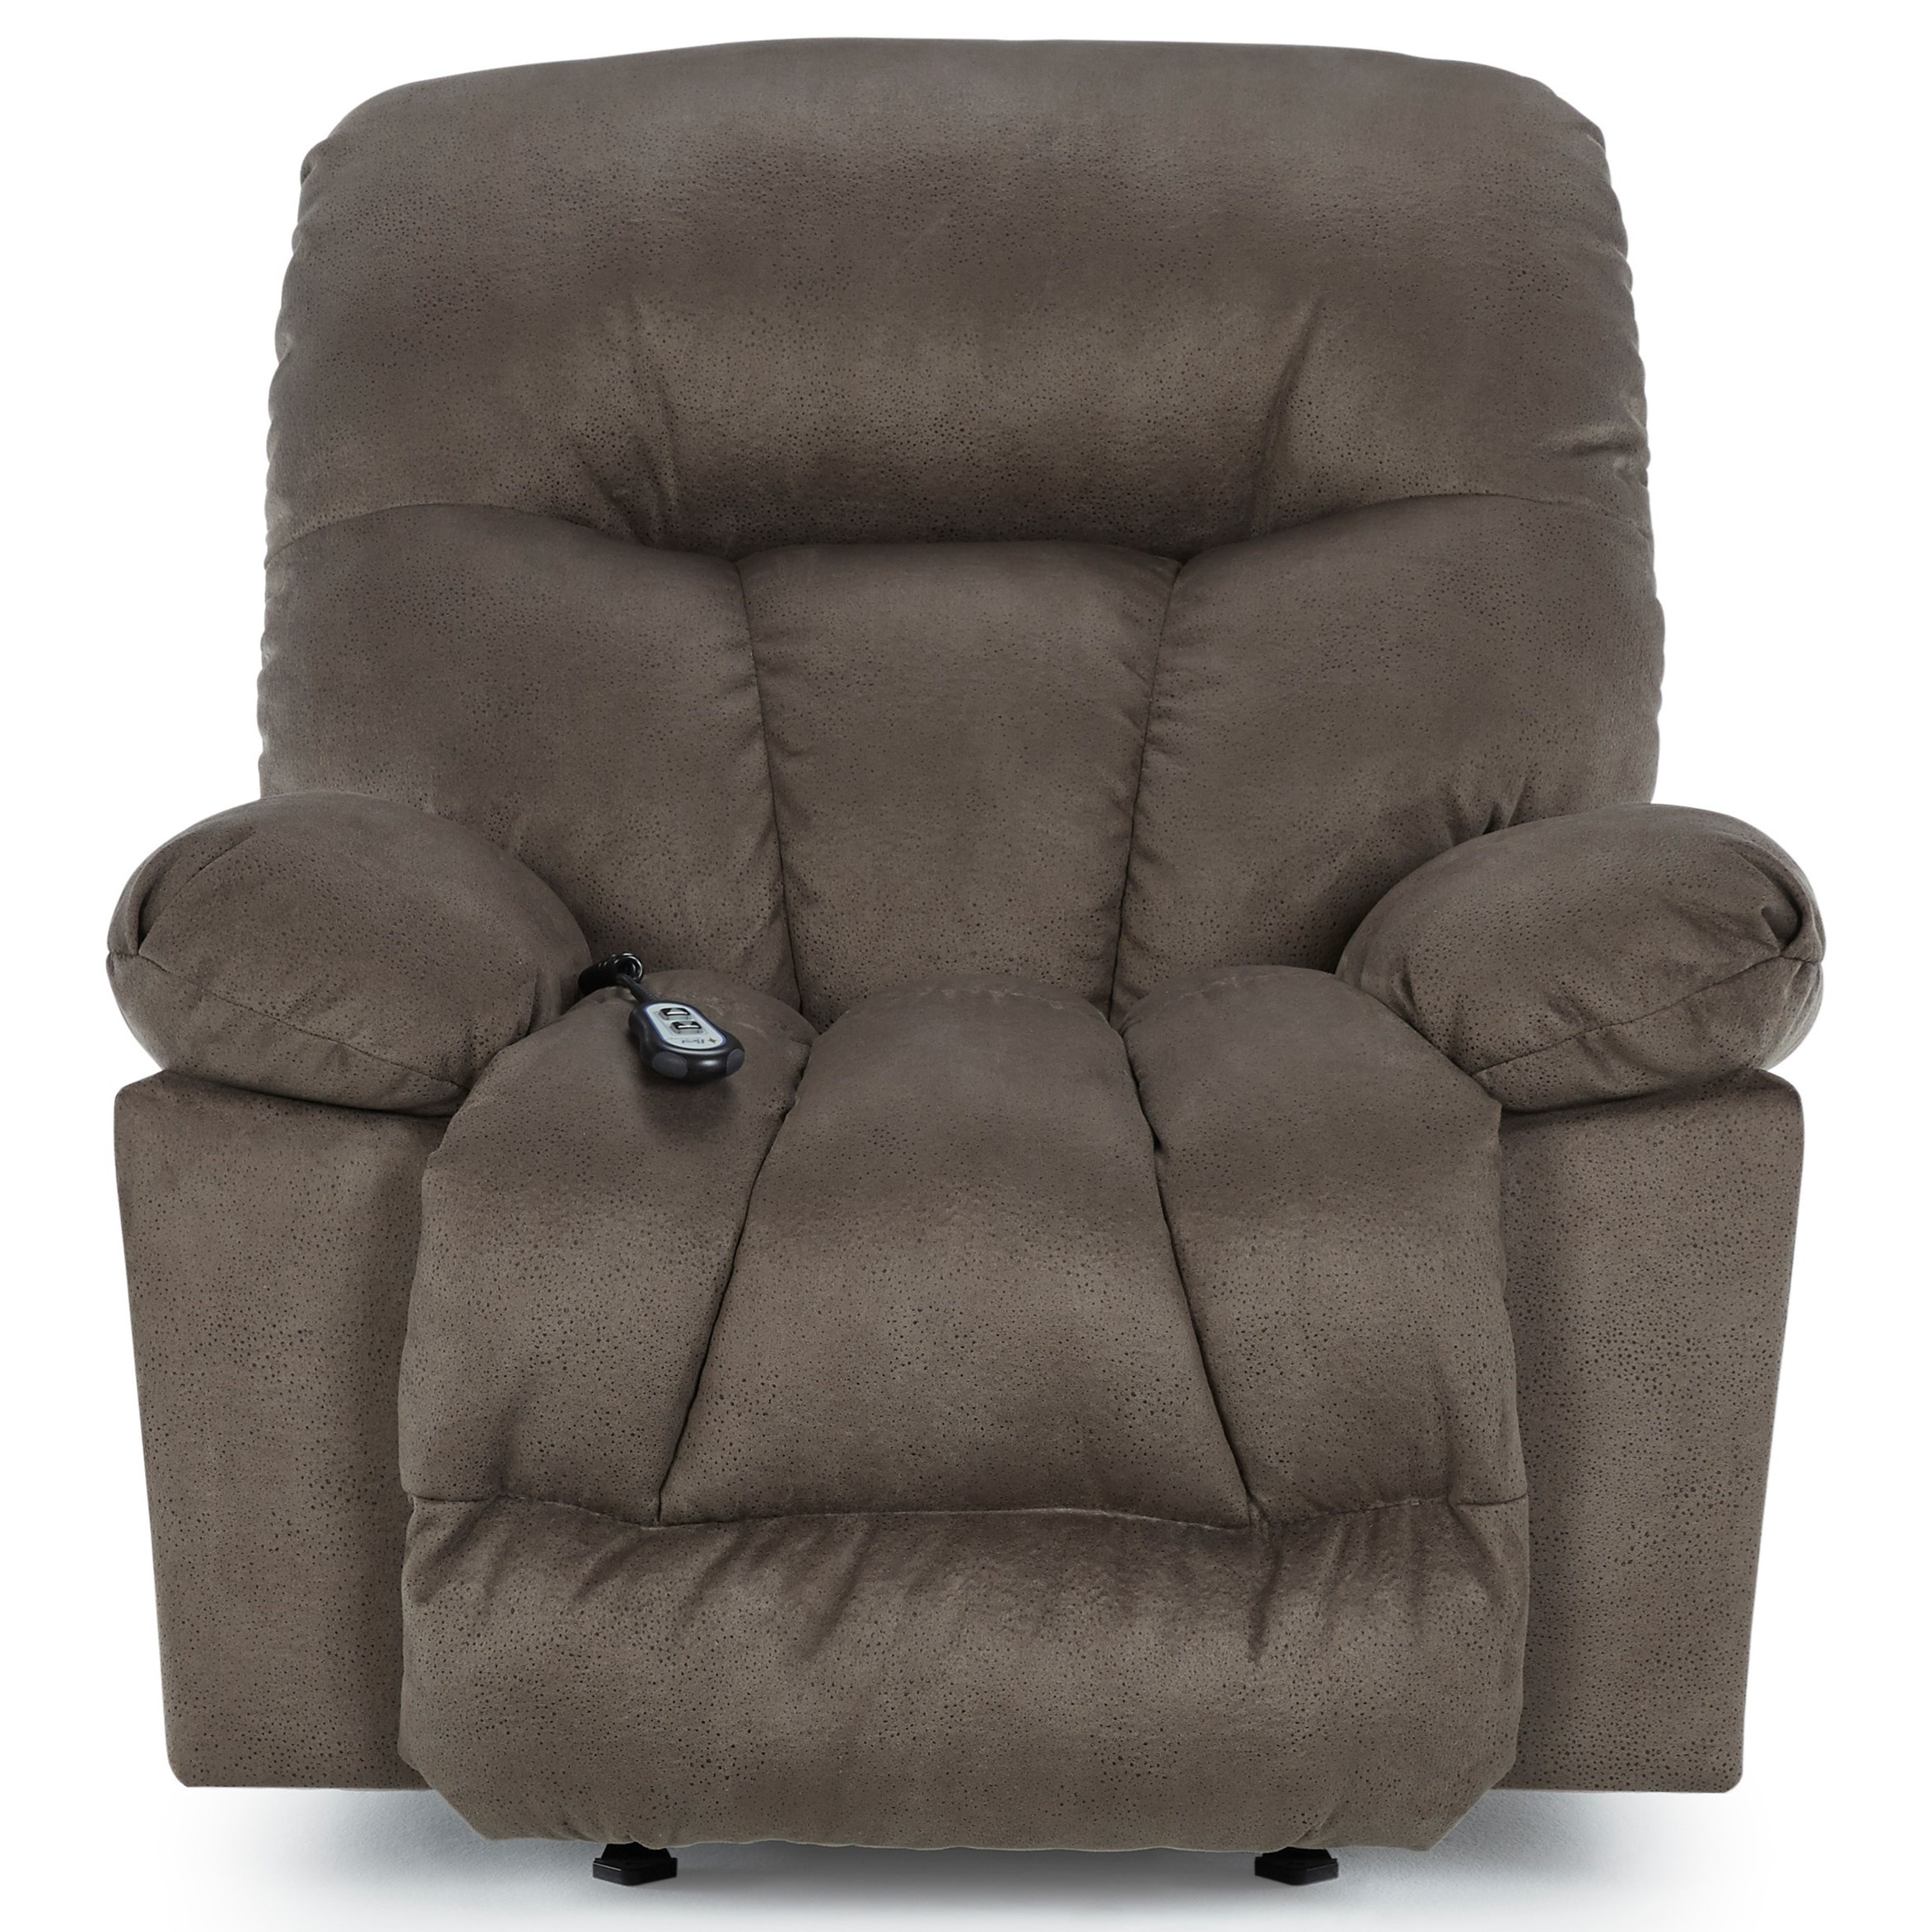 Retreat Rocker Recliner by Best Home Furnishings at Gill Brothers Furniture